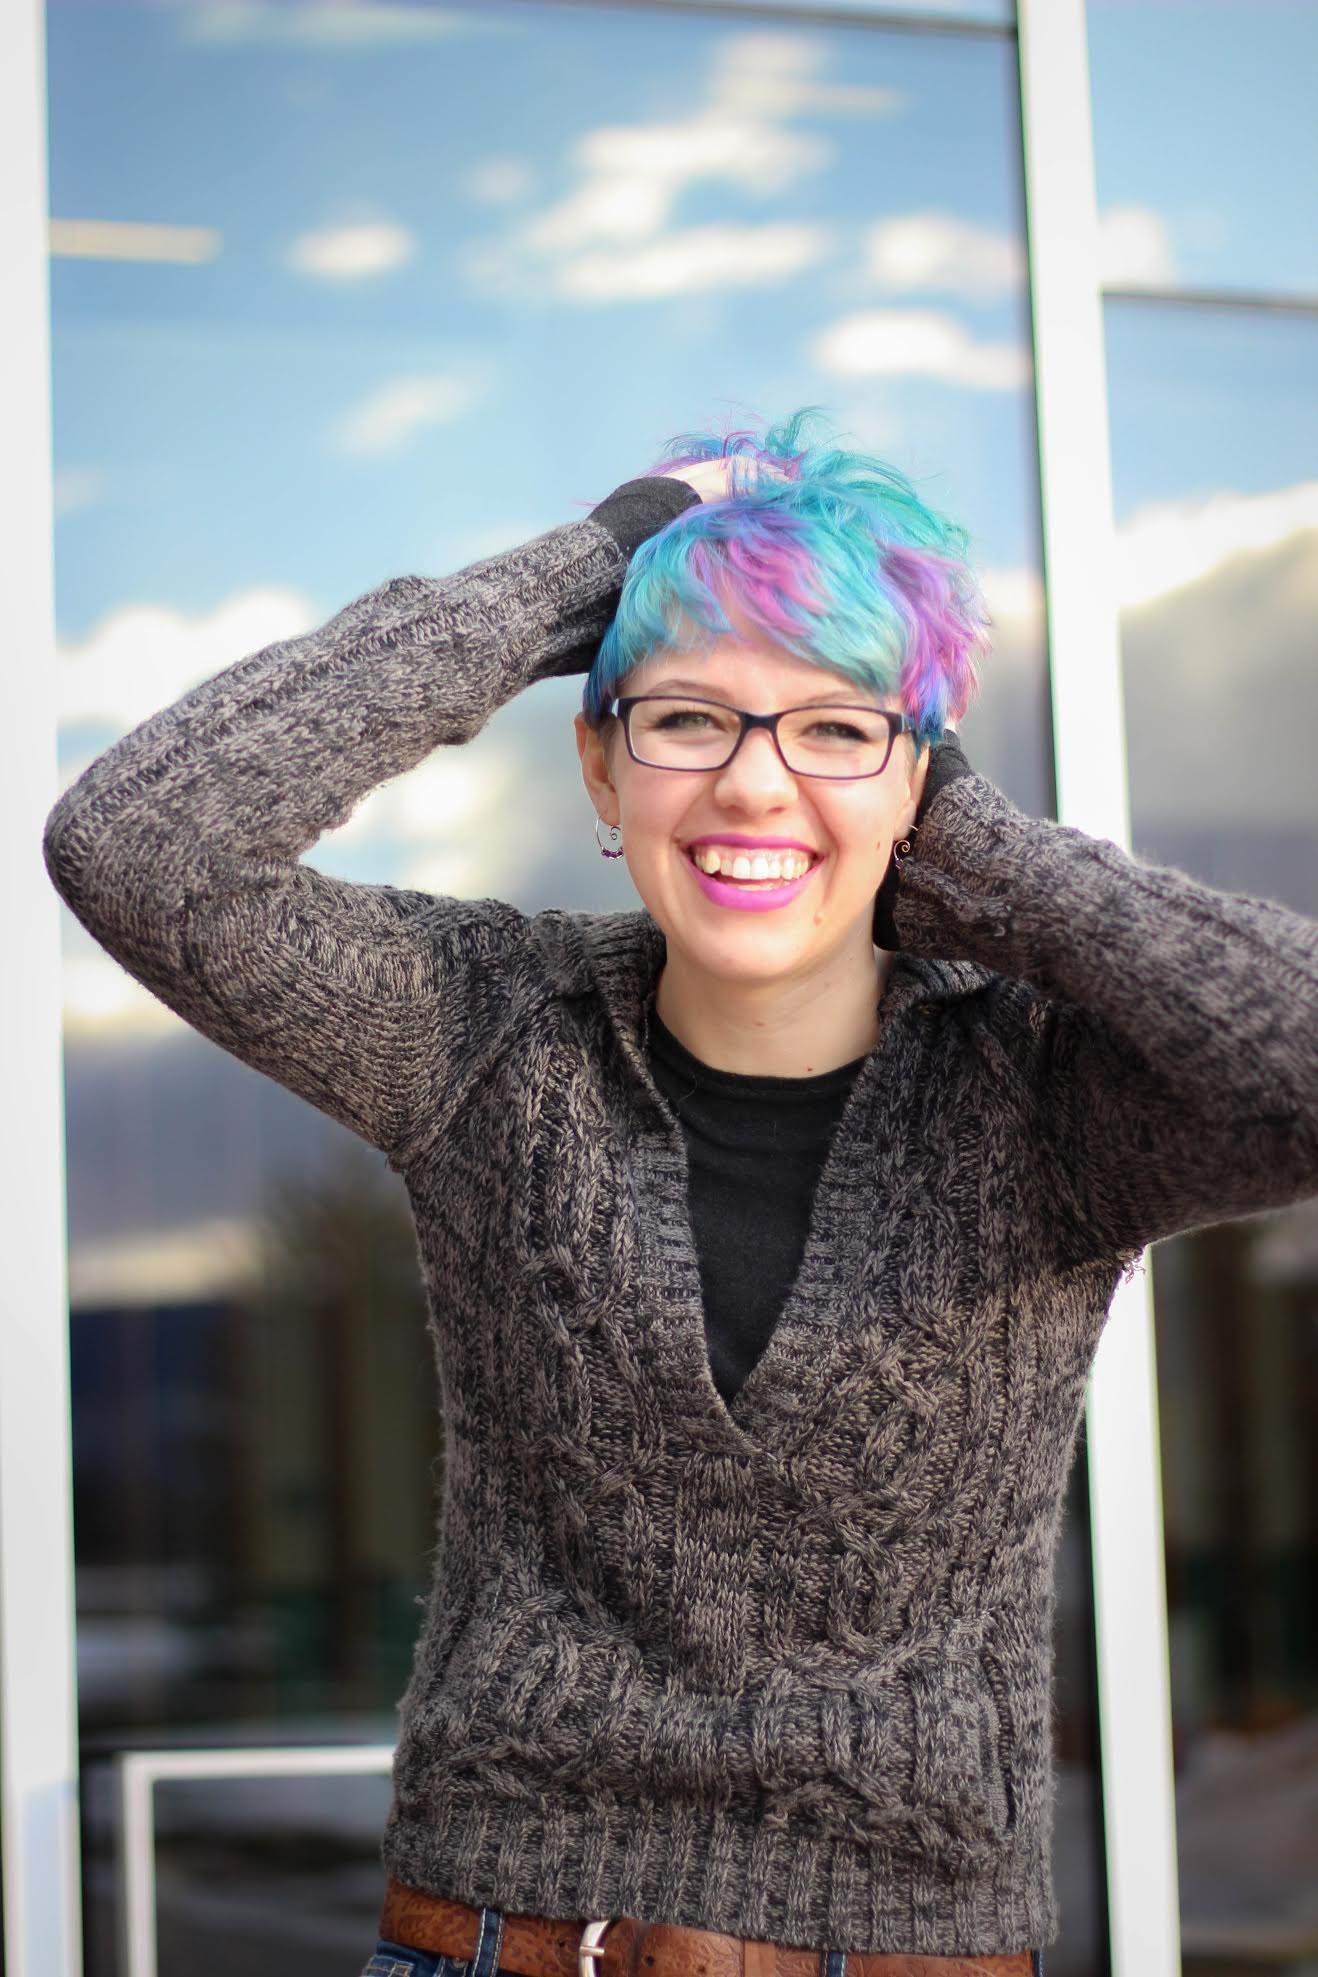 CSU student with blue, turquoise, and purple hair